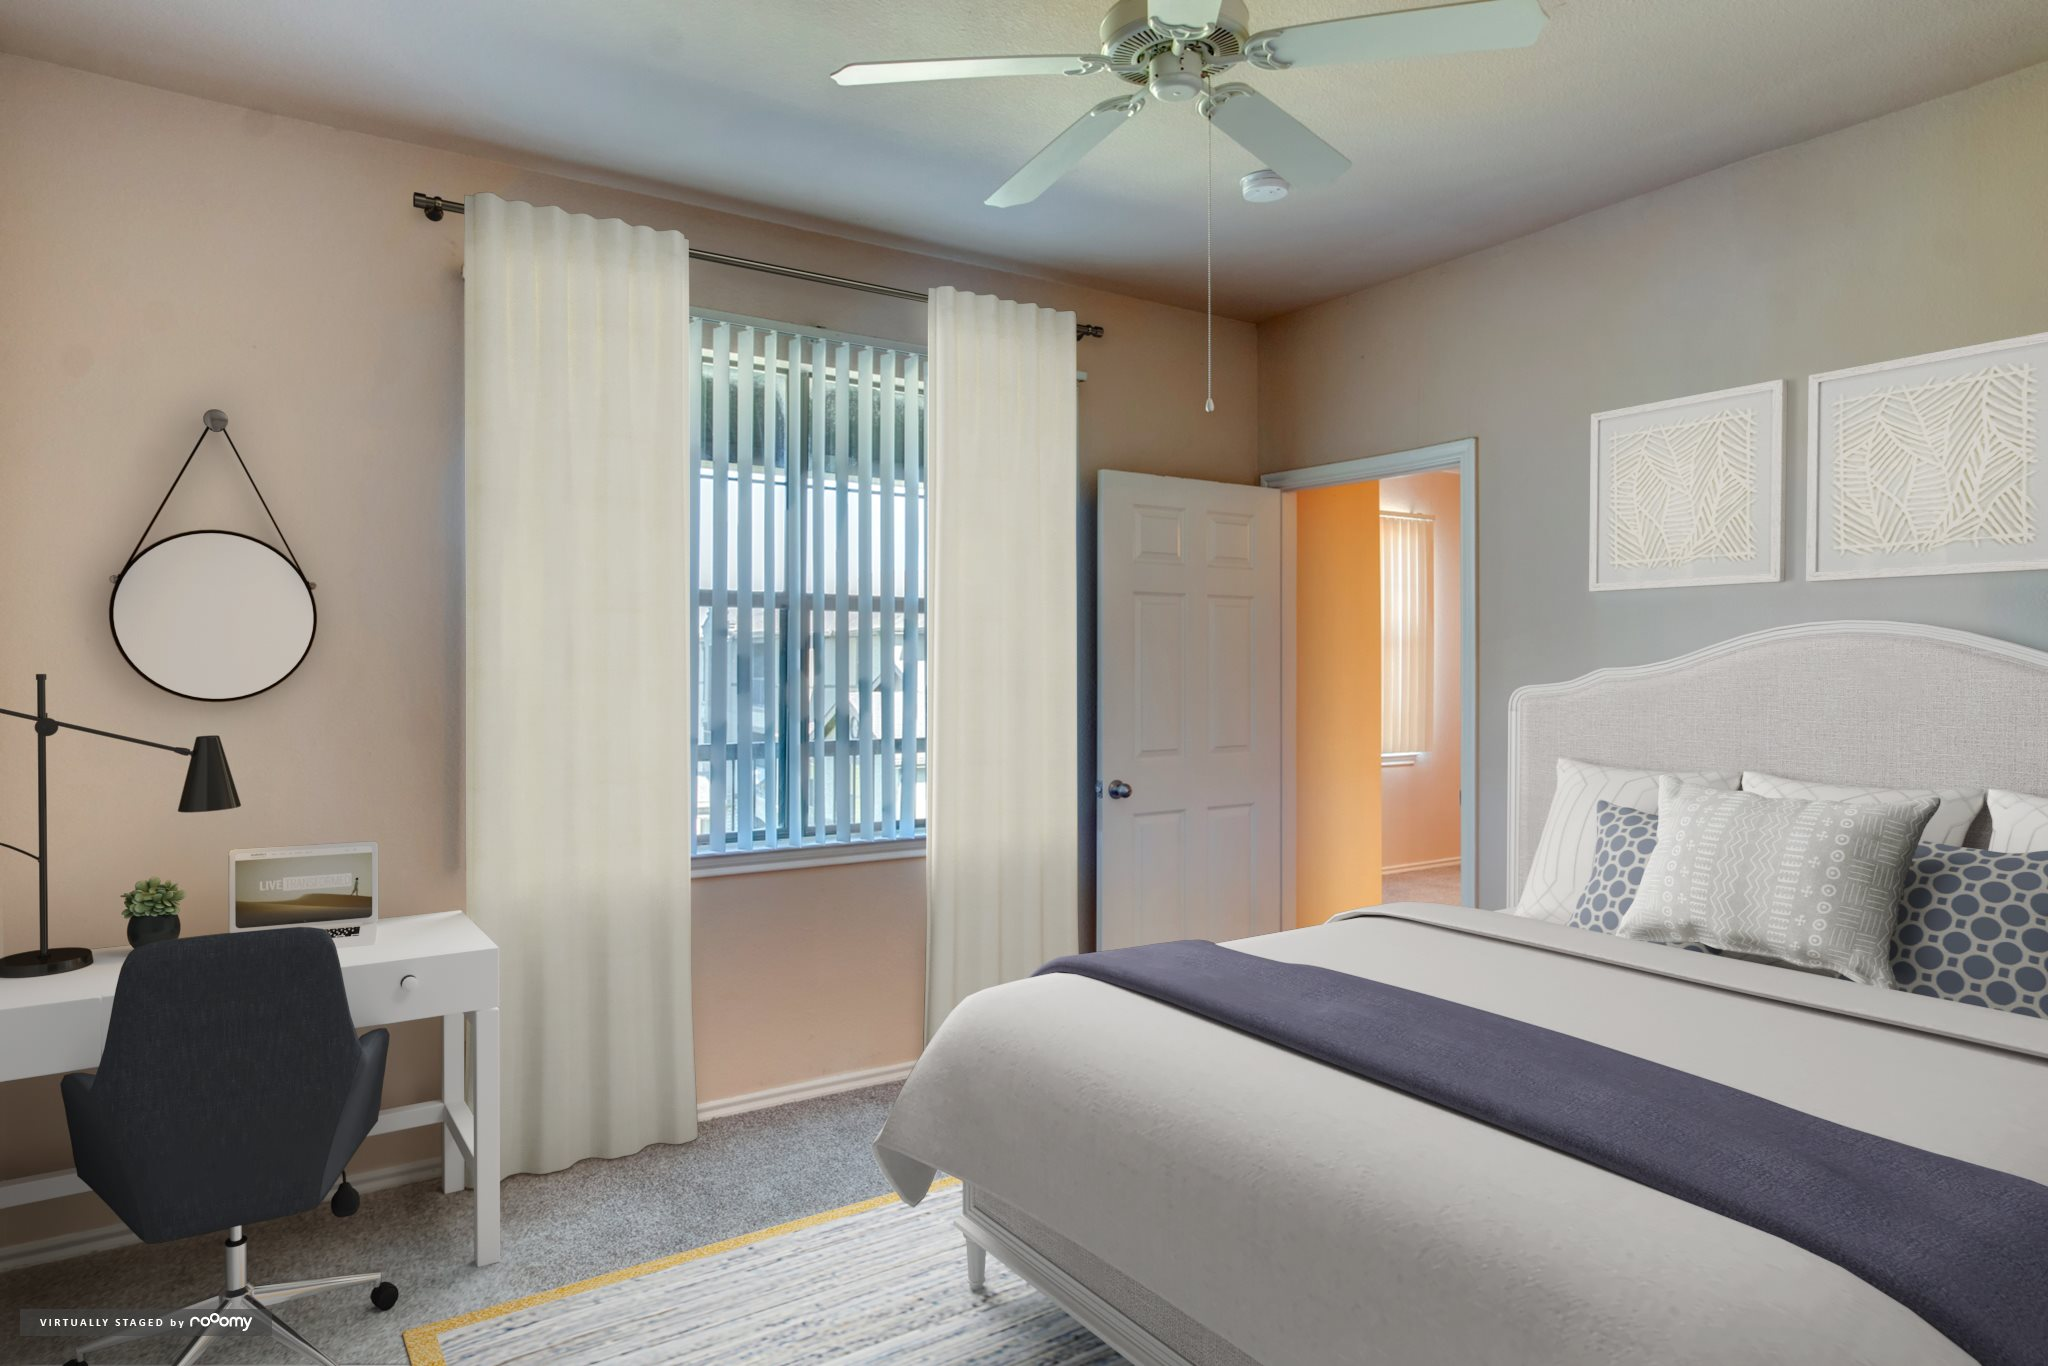 render-bedroom with large window and ceiling fan